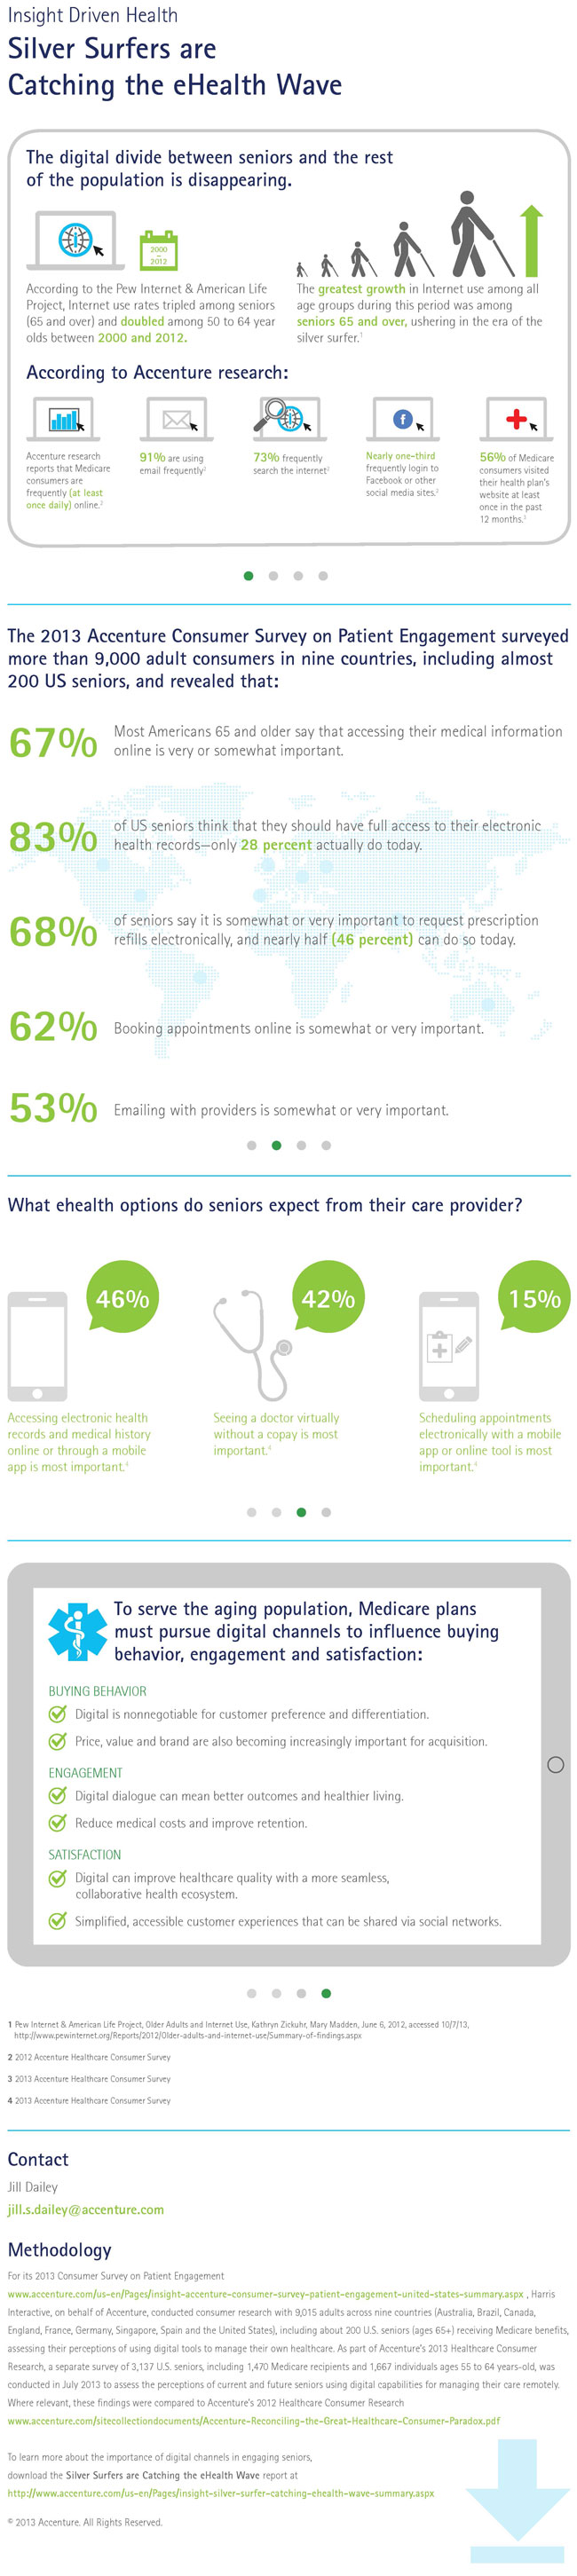 Accenture-Silver-Surfer-Infographic